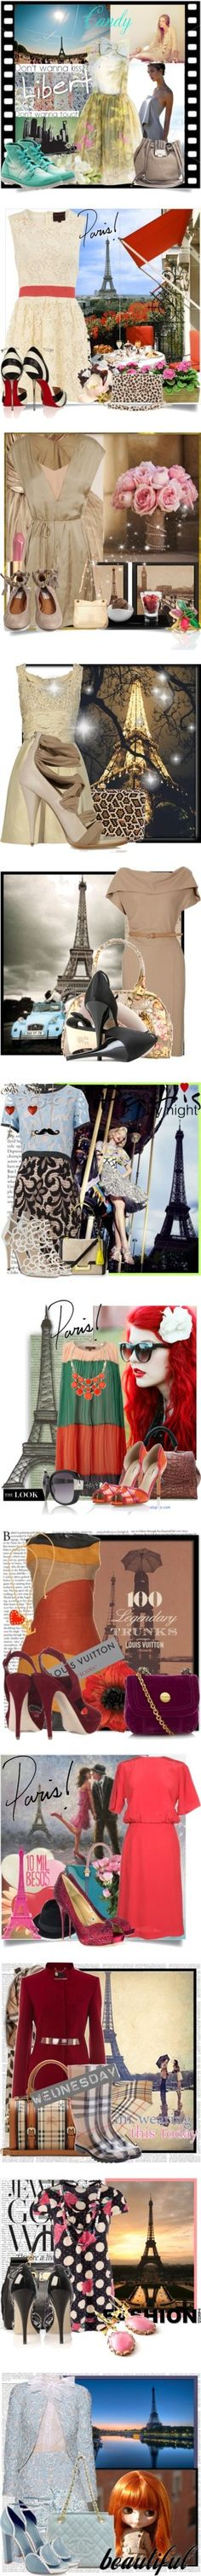 """PARIS & LUXO !"" by labelledejour ❤ liked on Polyvore"